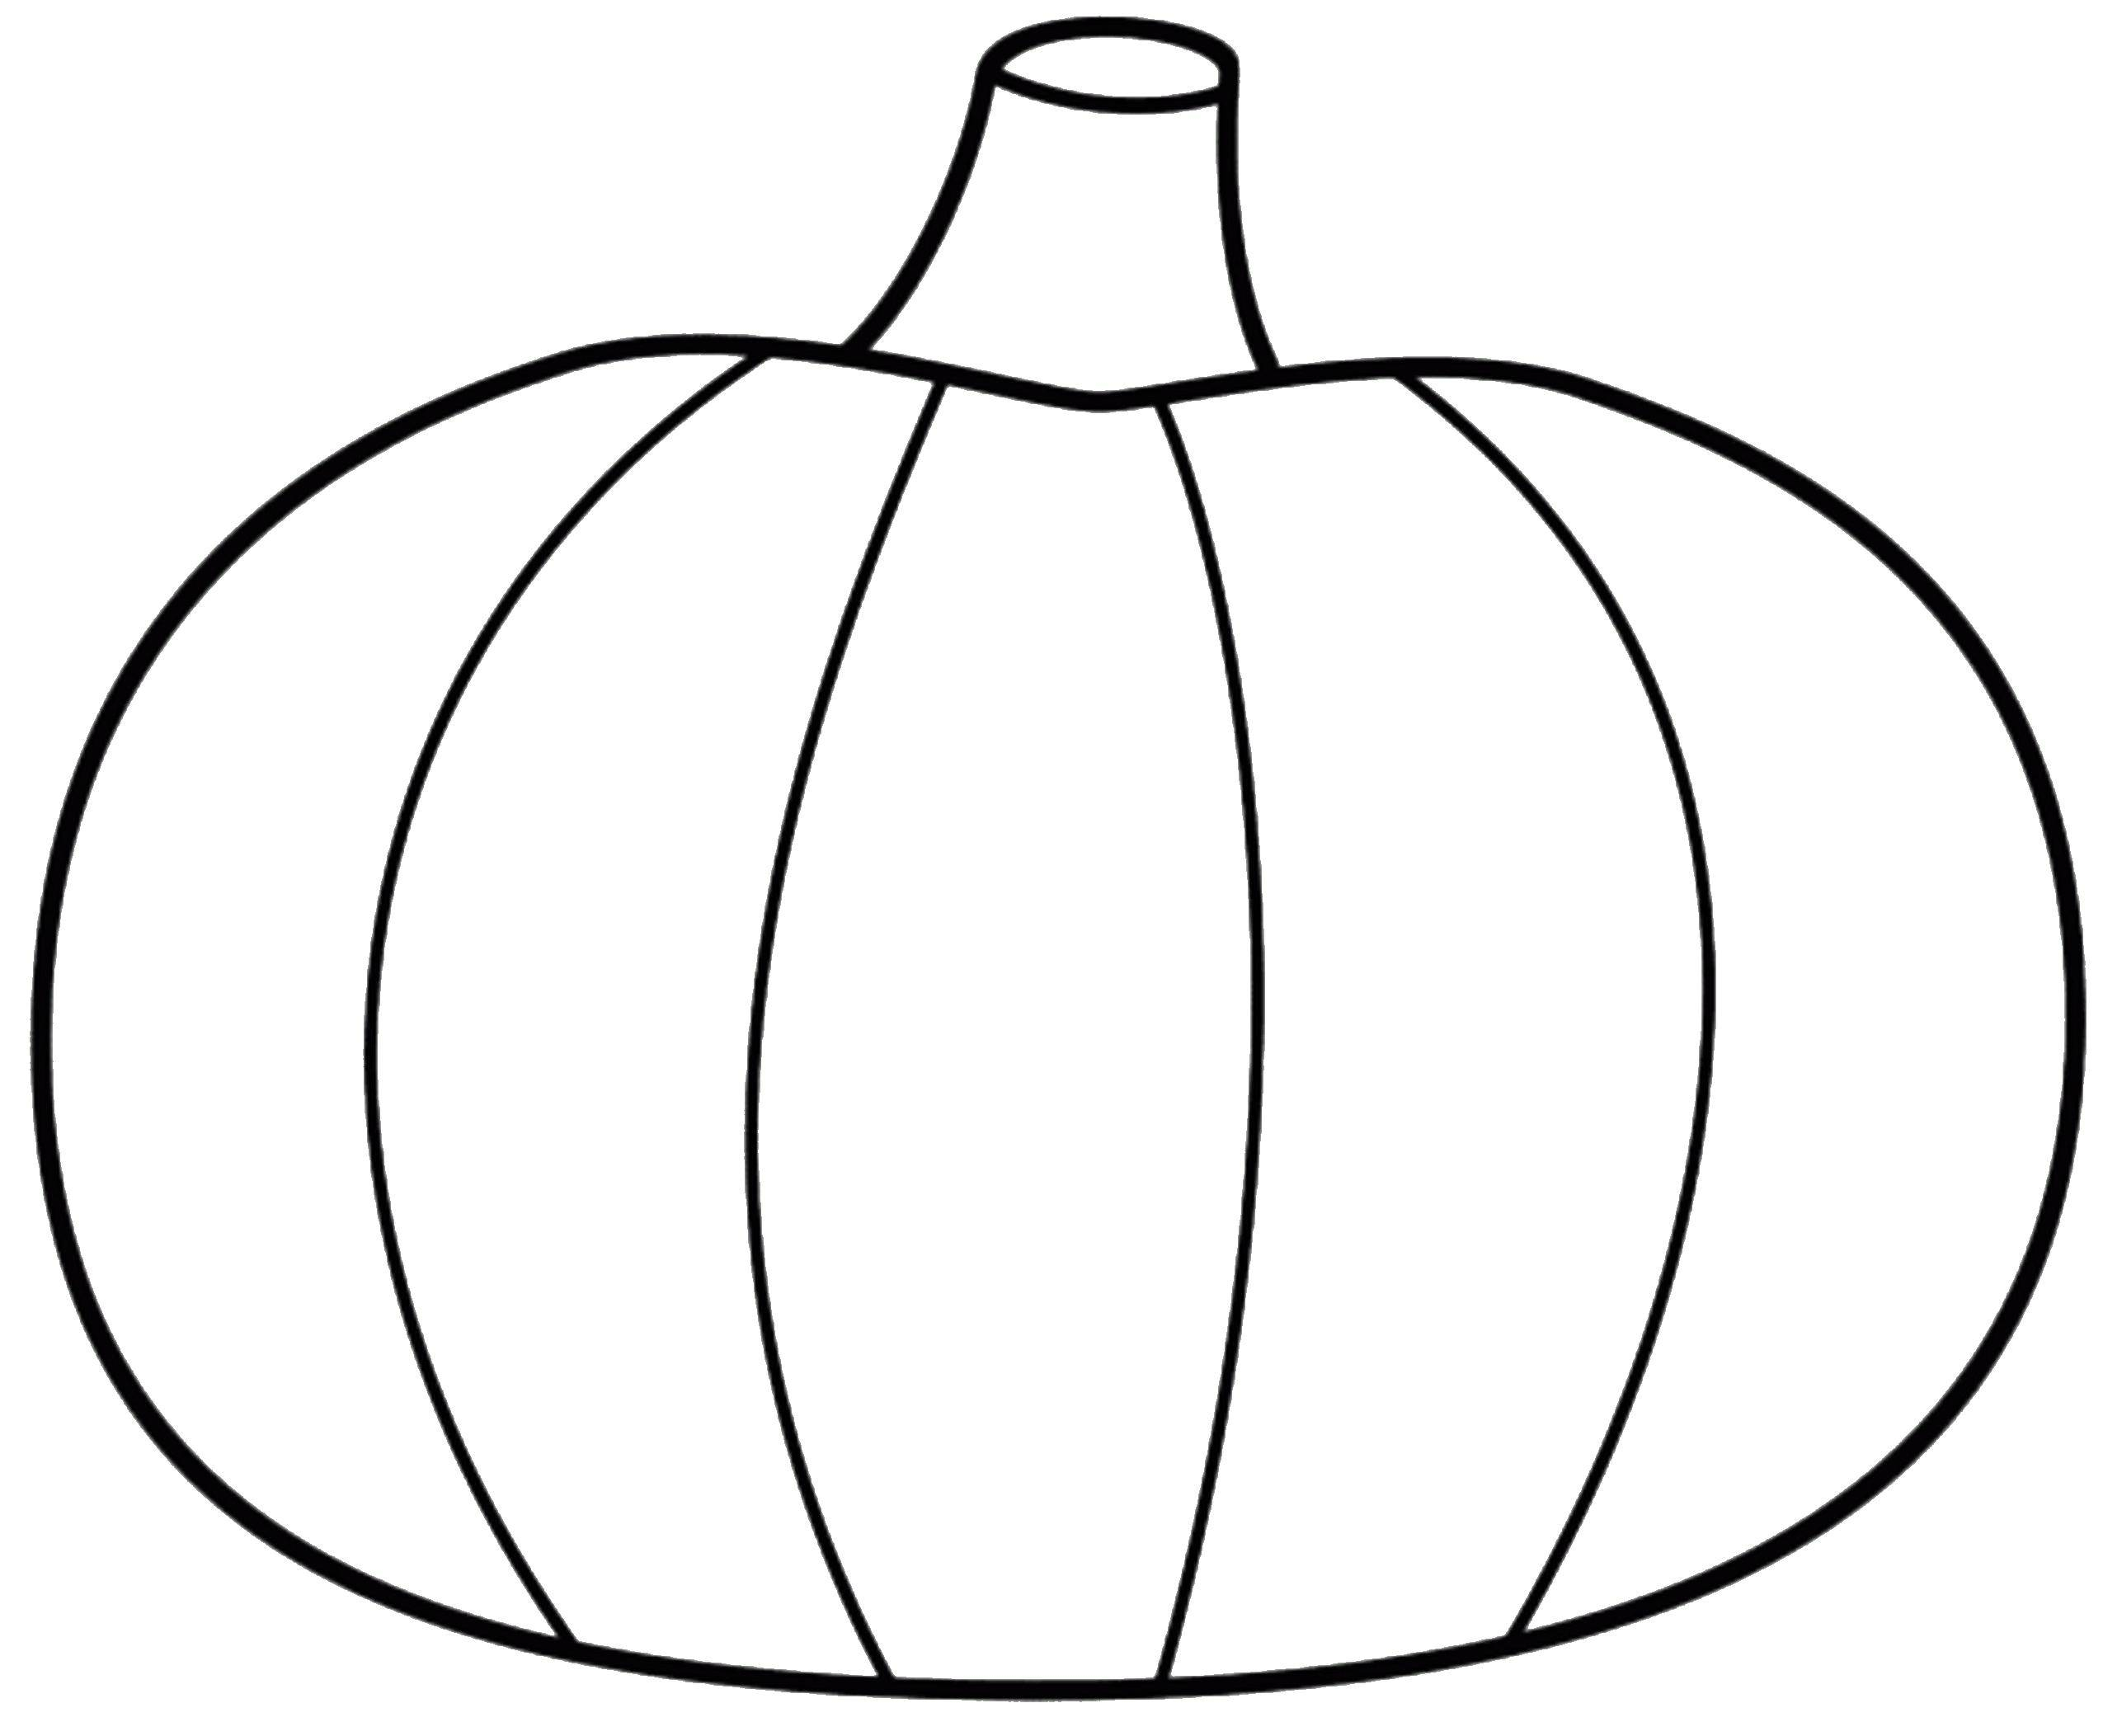 Coloring Page Of Pumpkin Pumpkin One Simple Pumpkin To Color Coloring Pages